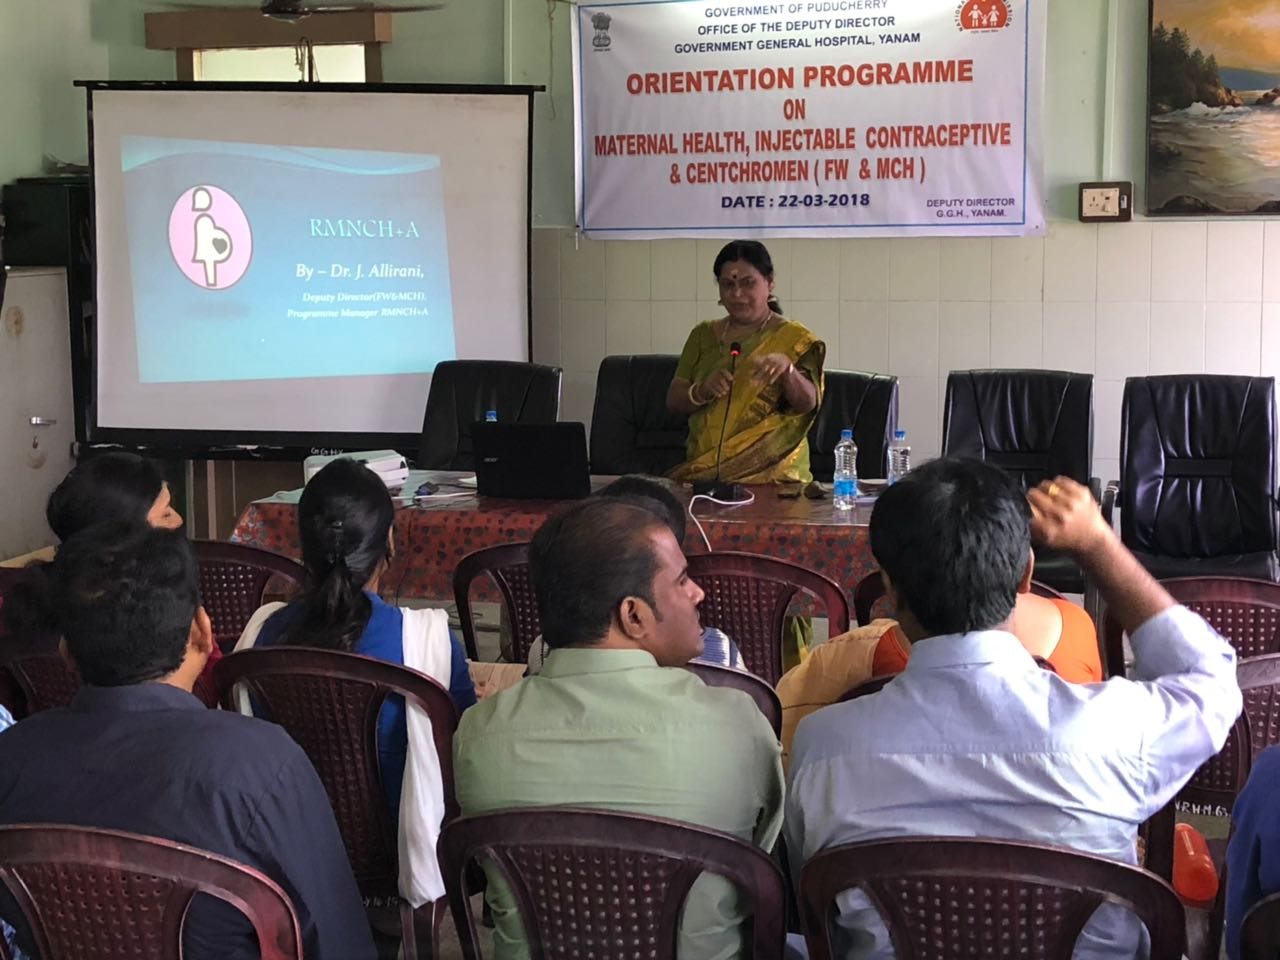 New contraceptive training successfully completed at Yanam district, Puducherry.